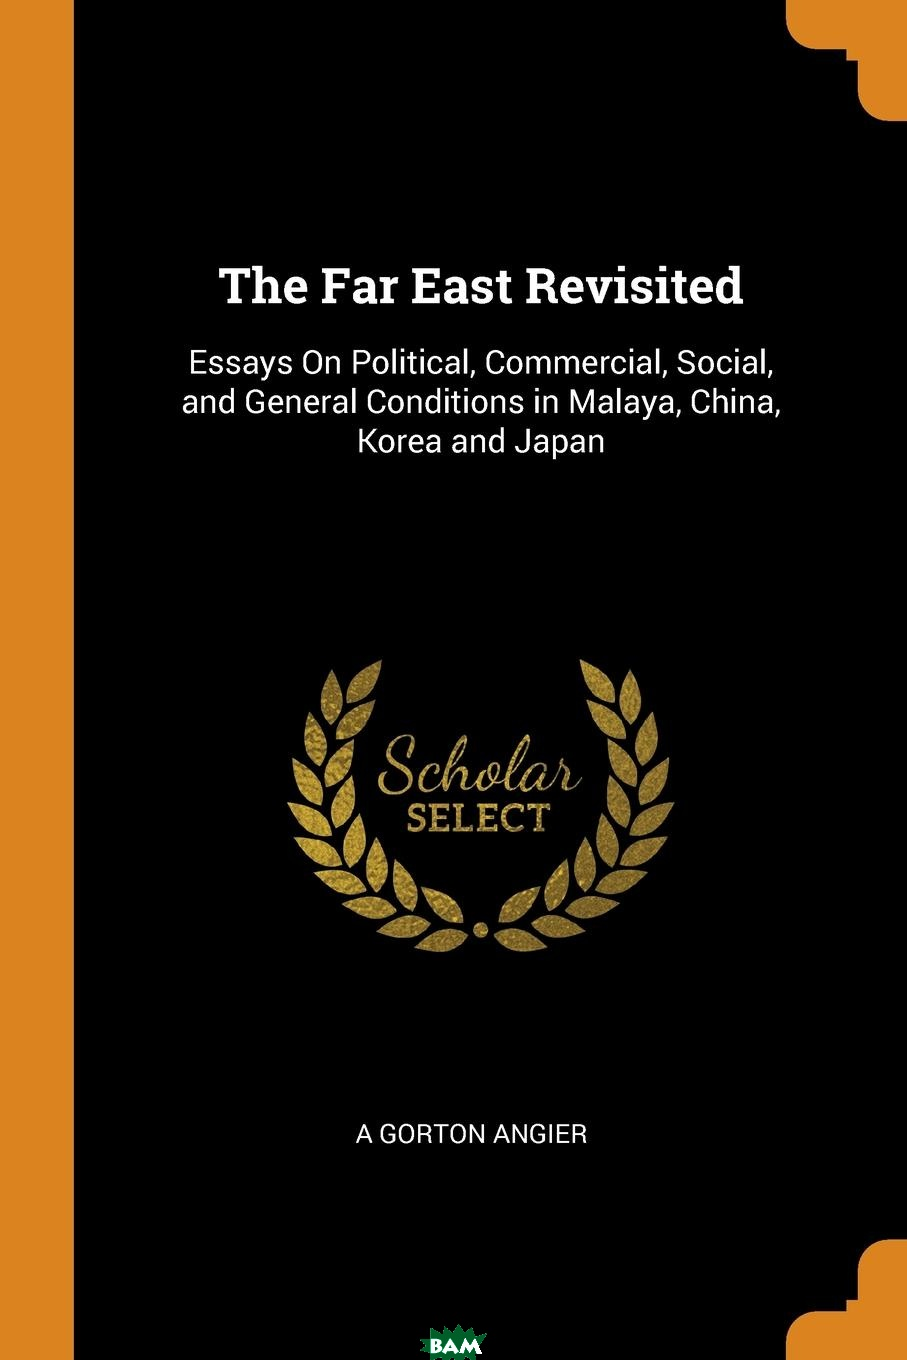 Купить The Far East Revisited. Essays On Political, Commercial, Social, and General Conditions in Malaya, China, Korea and Japan, A Gorton Angier, 9780341789574